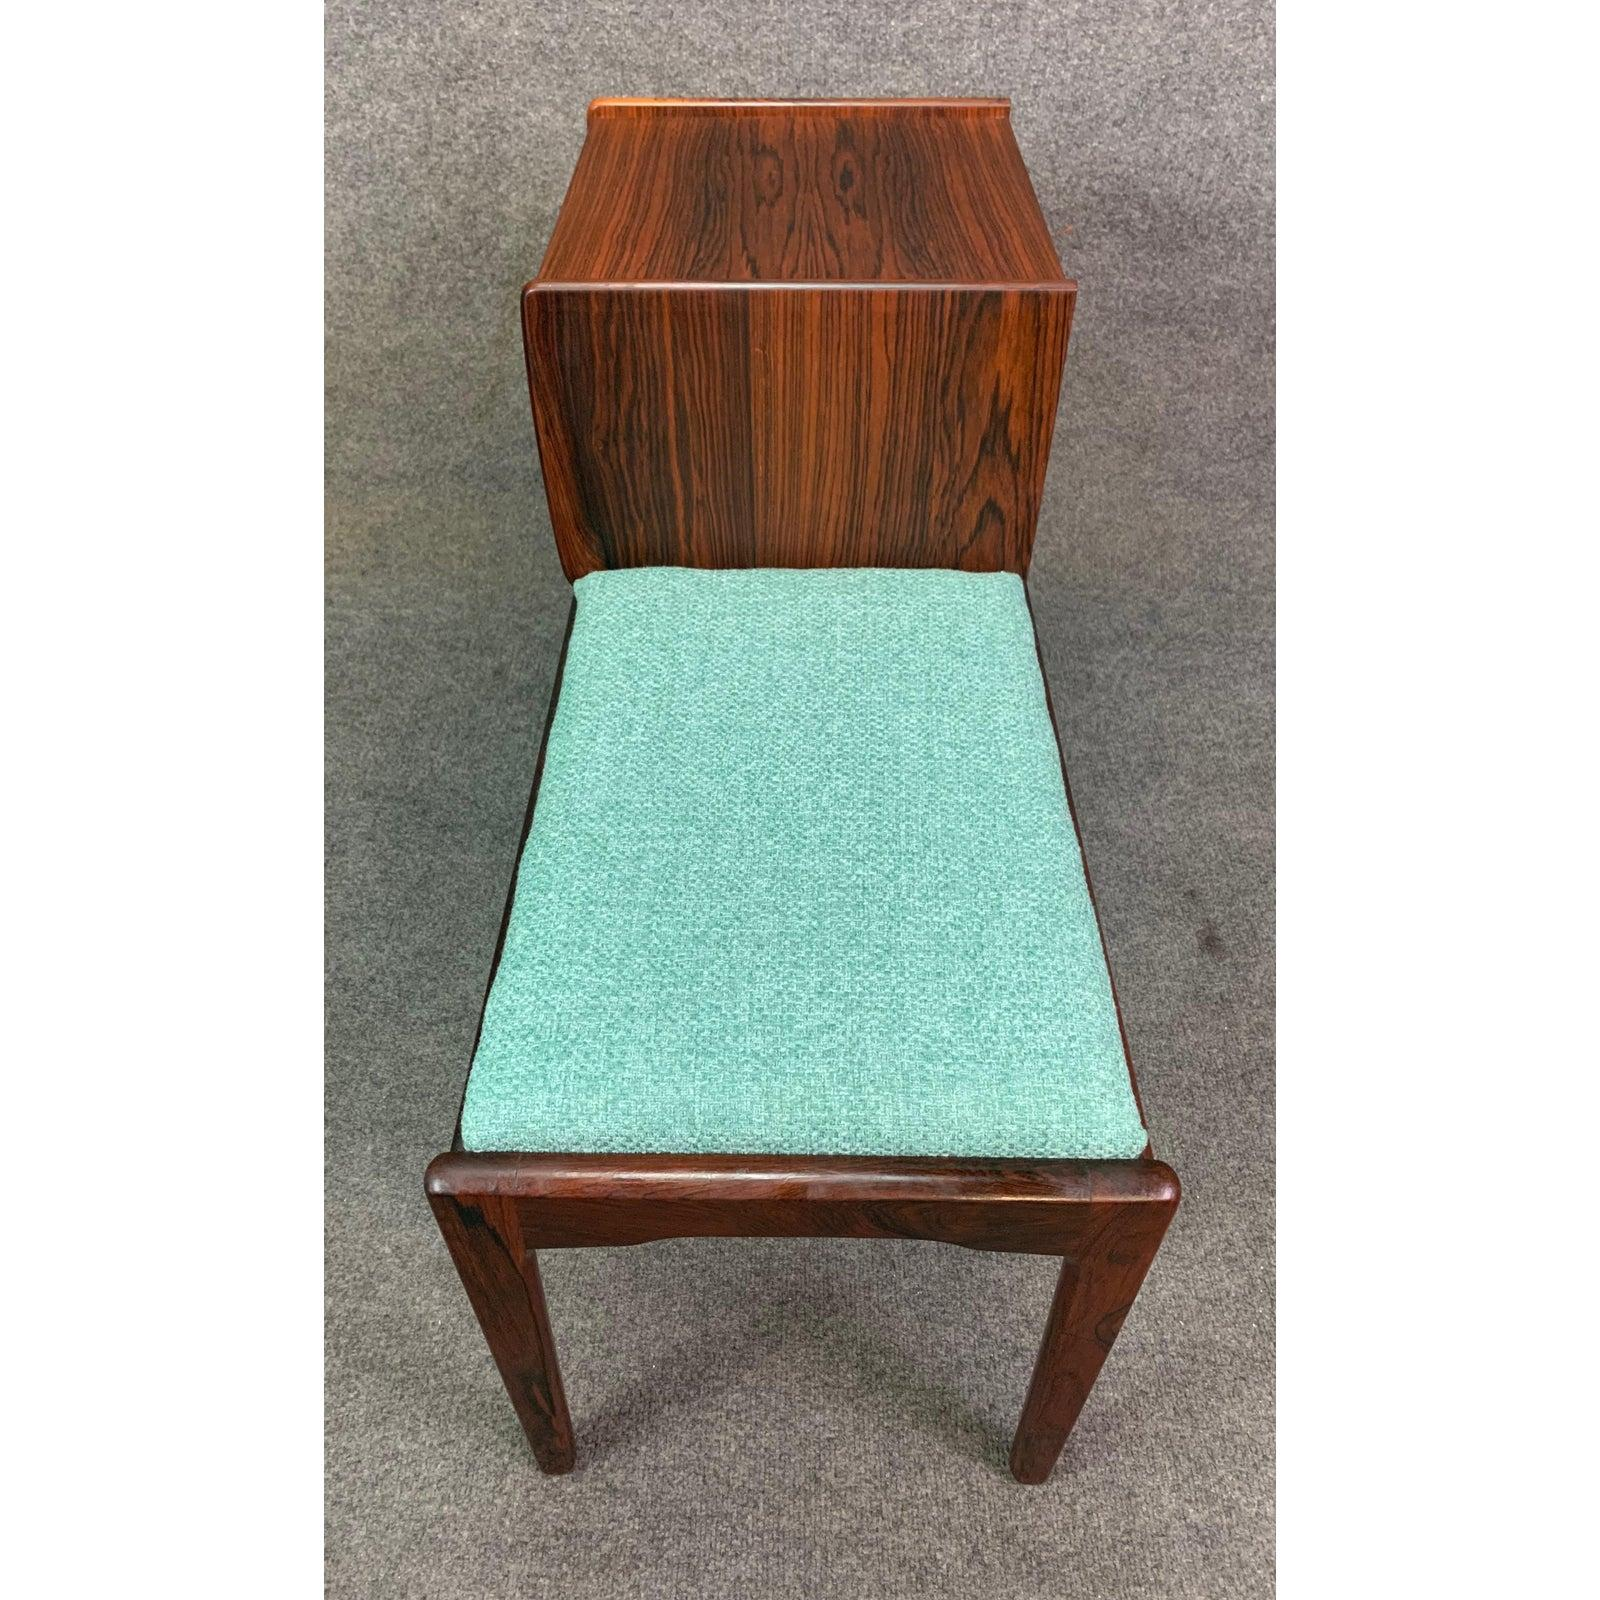 Vintage Danish Mid Century Modern Rosewood Telephone Bench Entry Way Console For Sale At 1stdibs